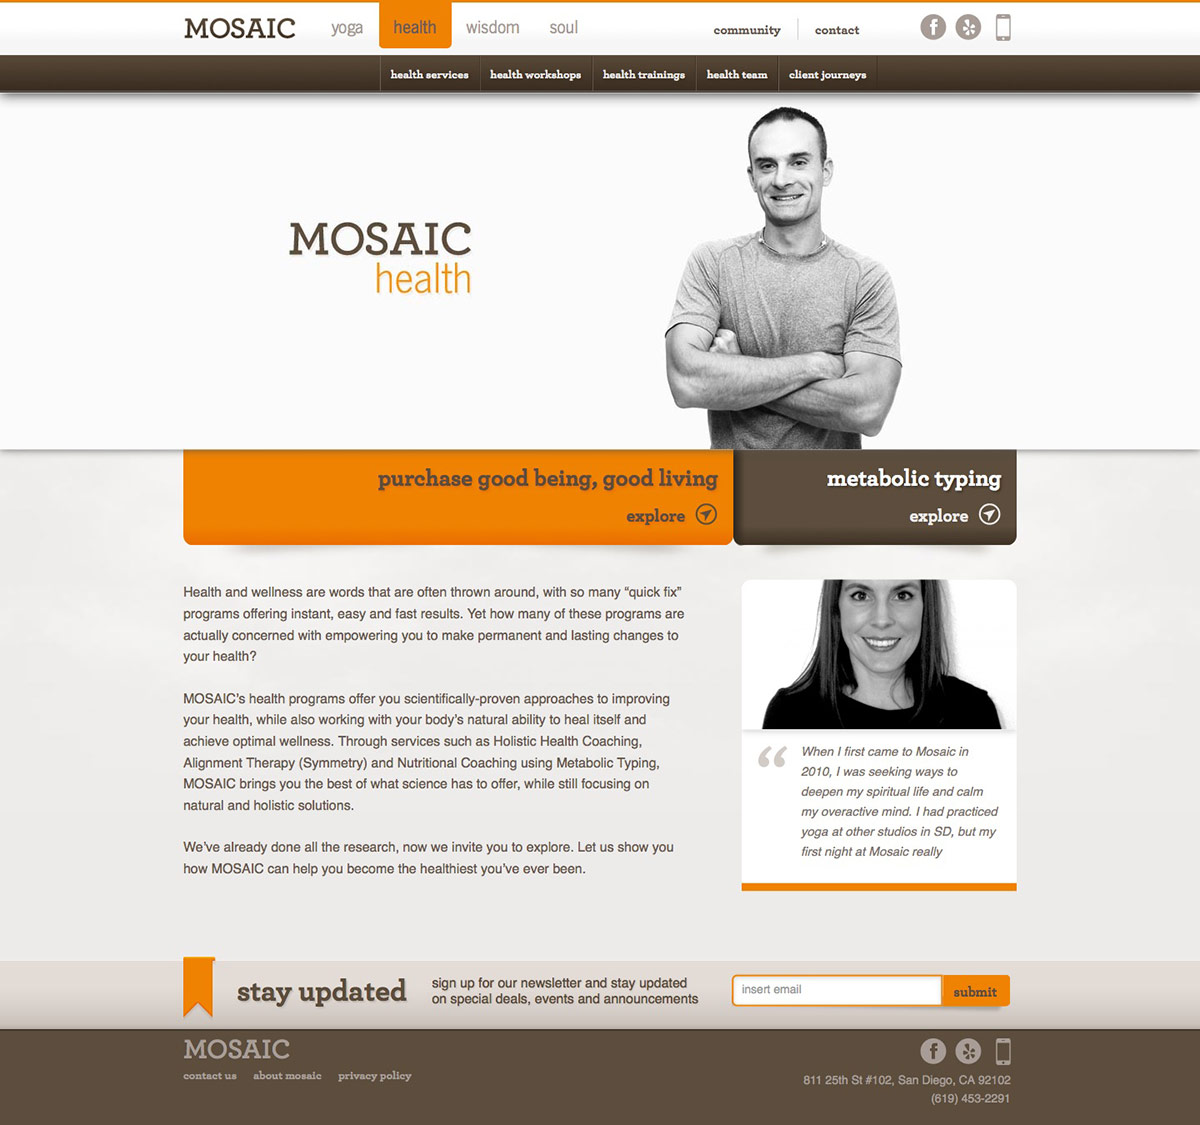 ignyte-web-design-agency-mosaic-health-homepage